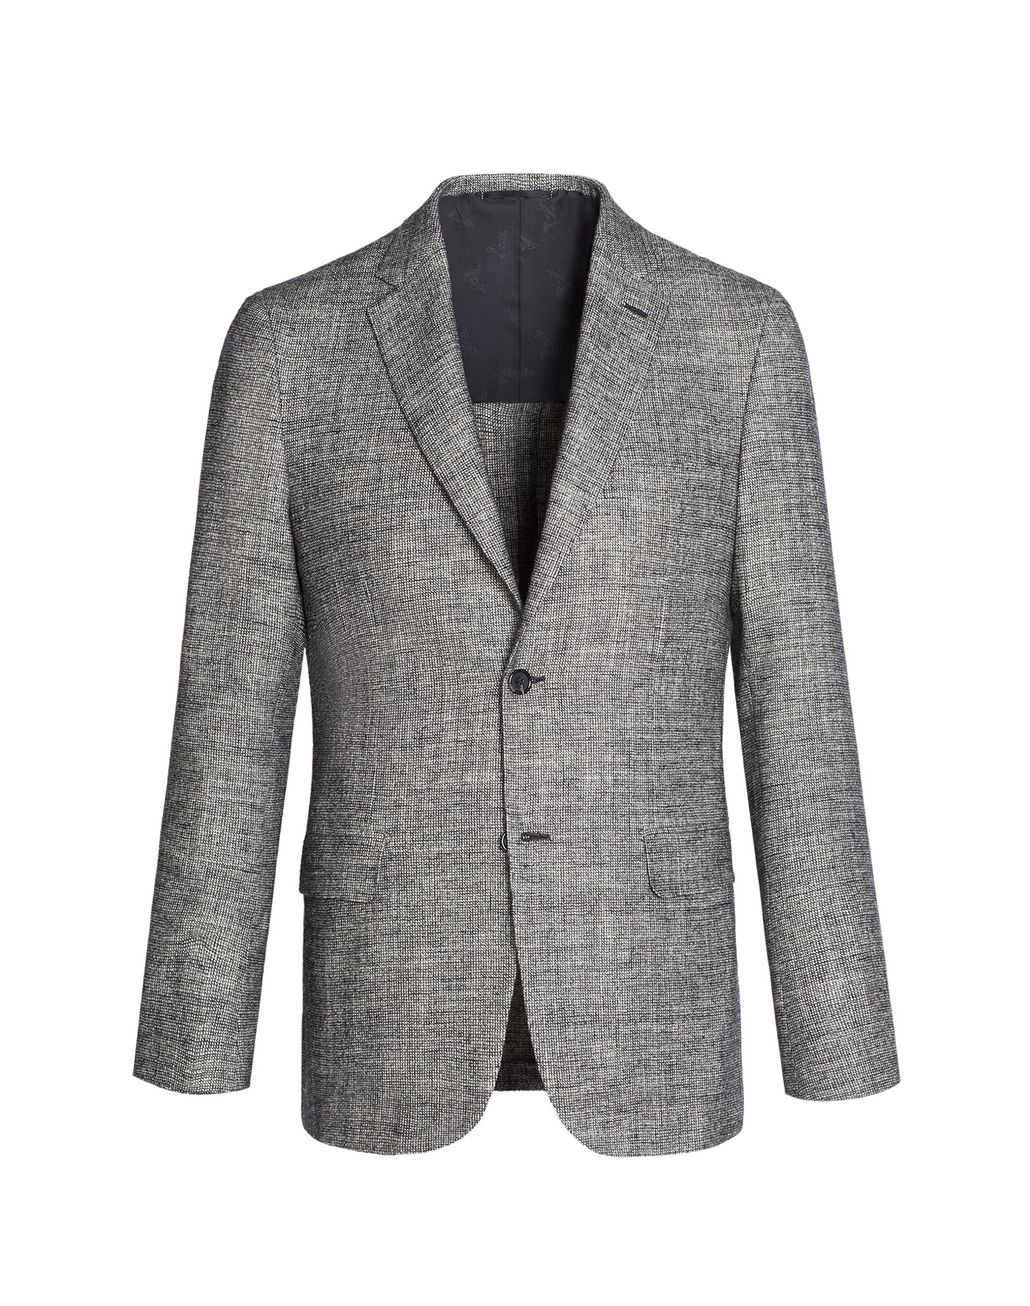 BRIONI Gray and White Ravello Jacket Jackets Man f